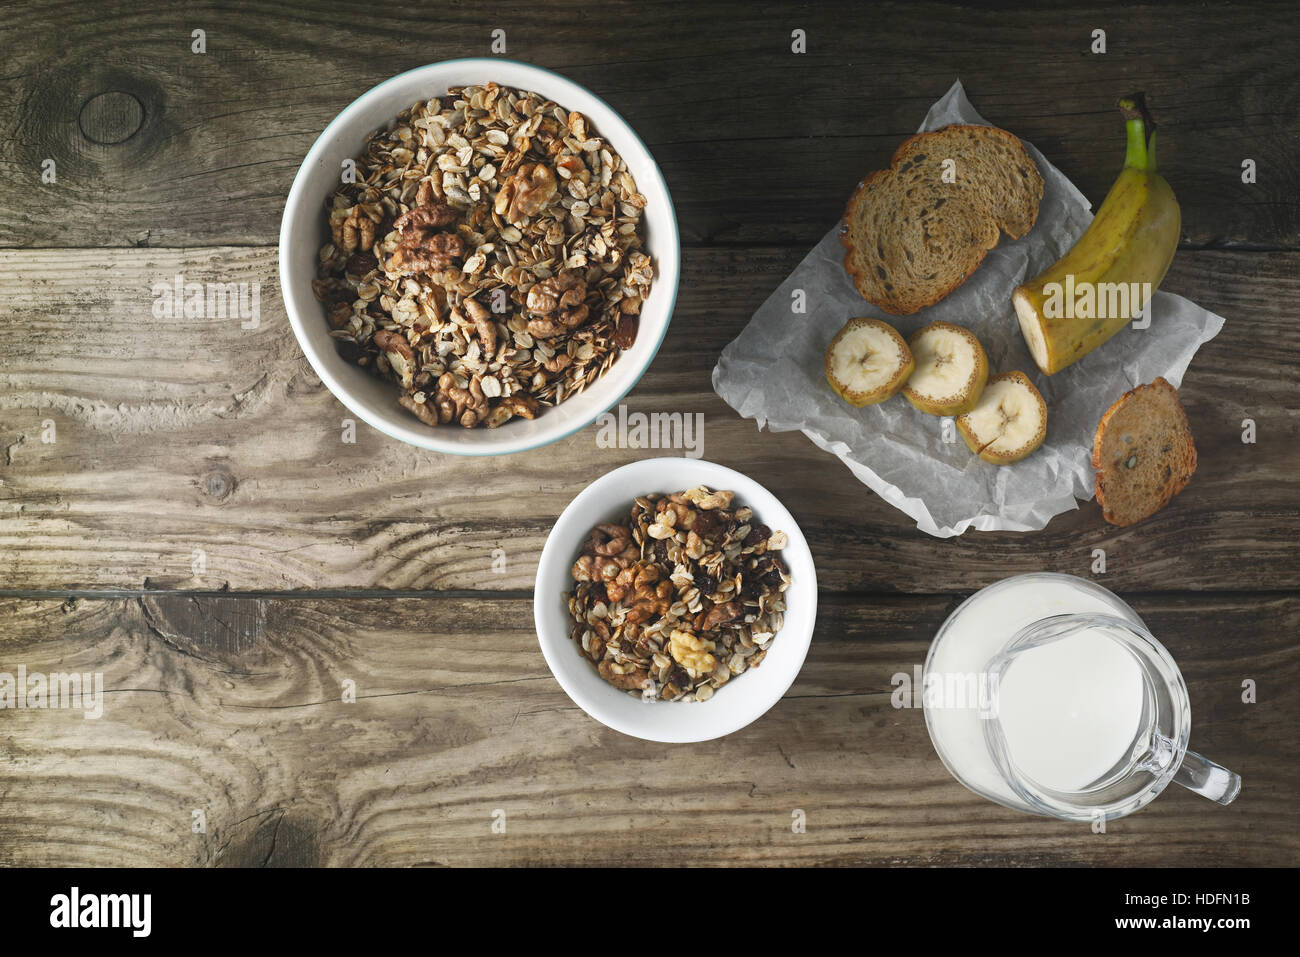 Breakfast with granola on the wooden table horizontal - Stock Image